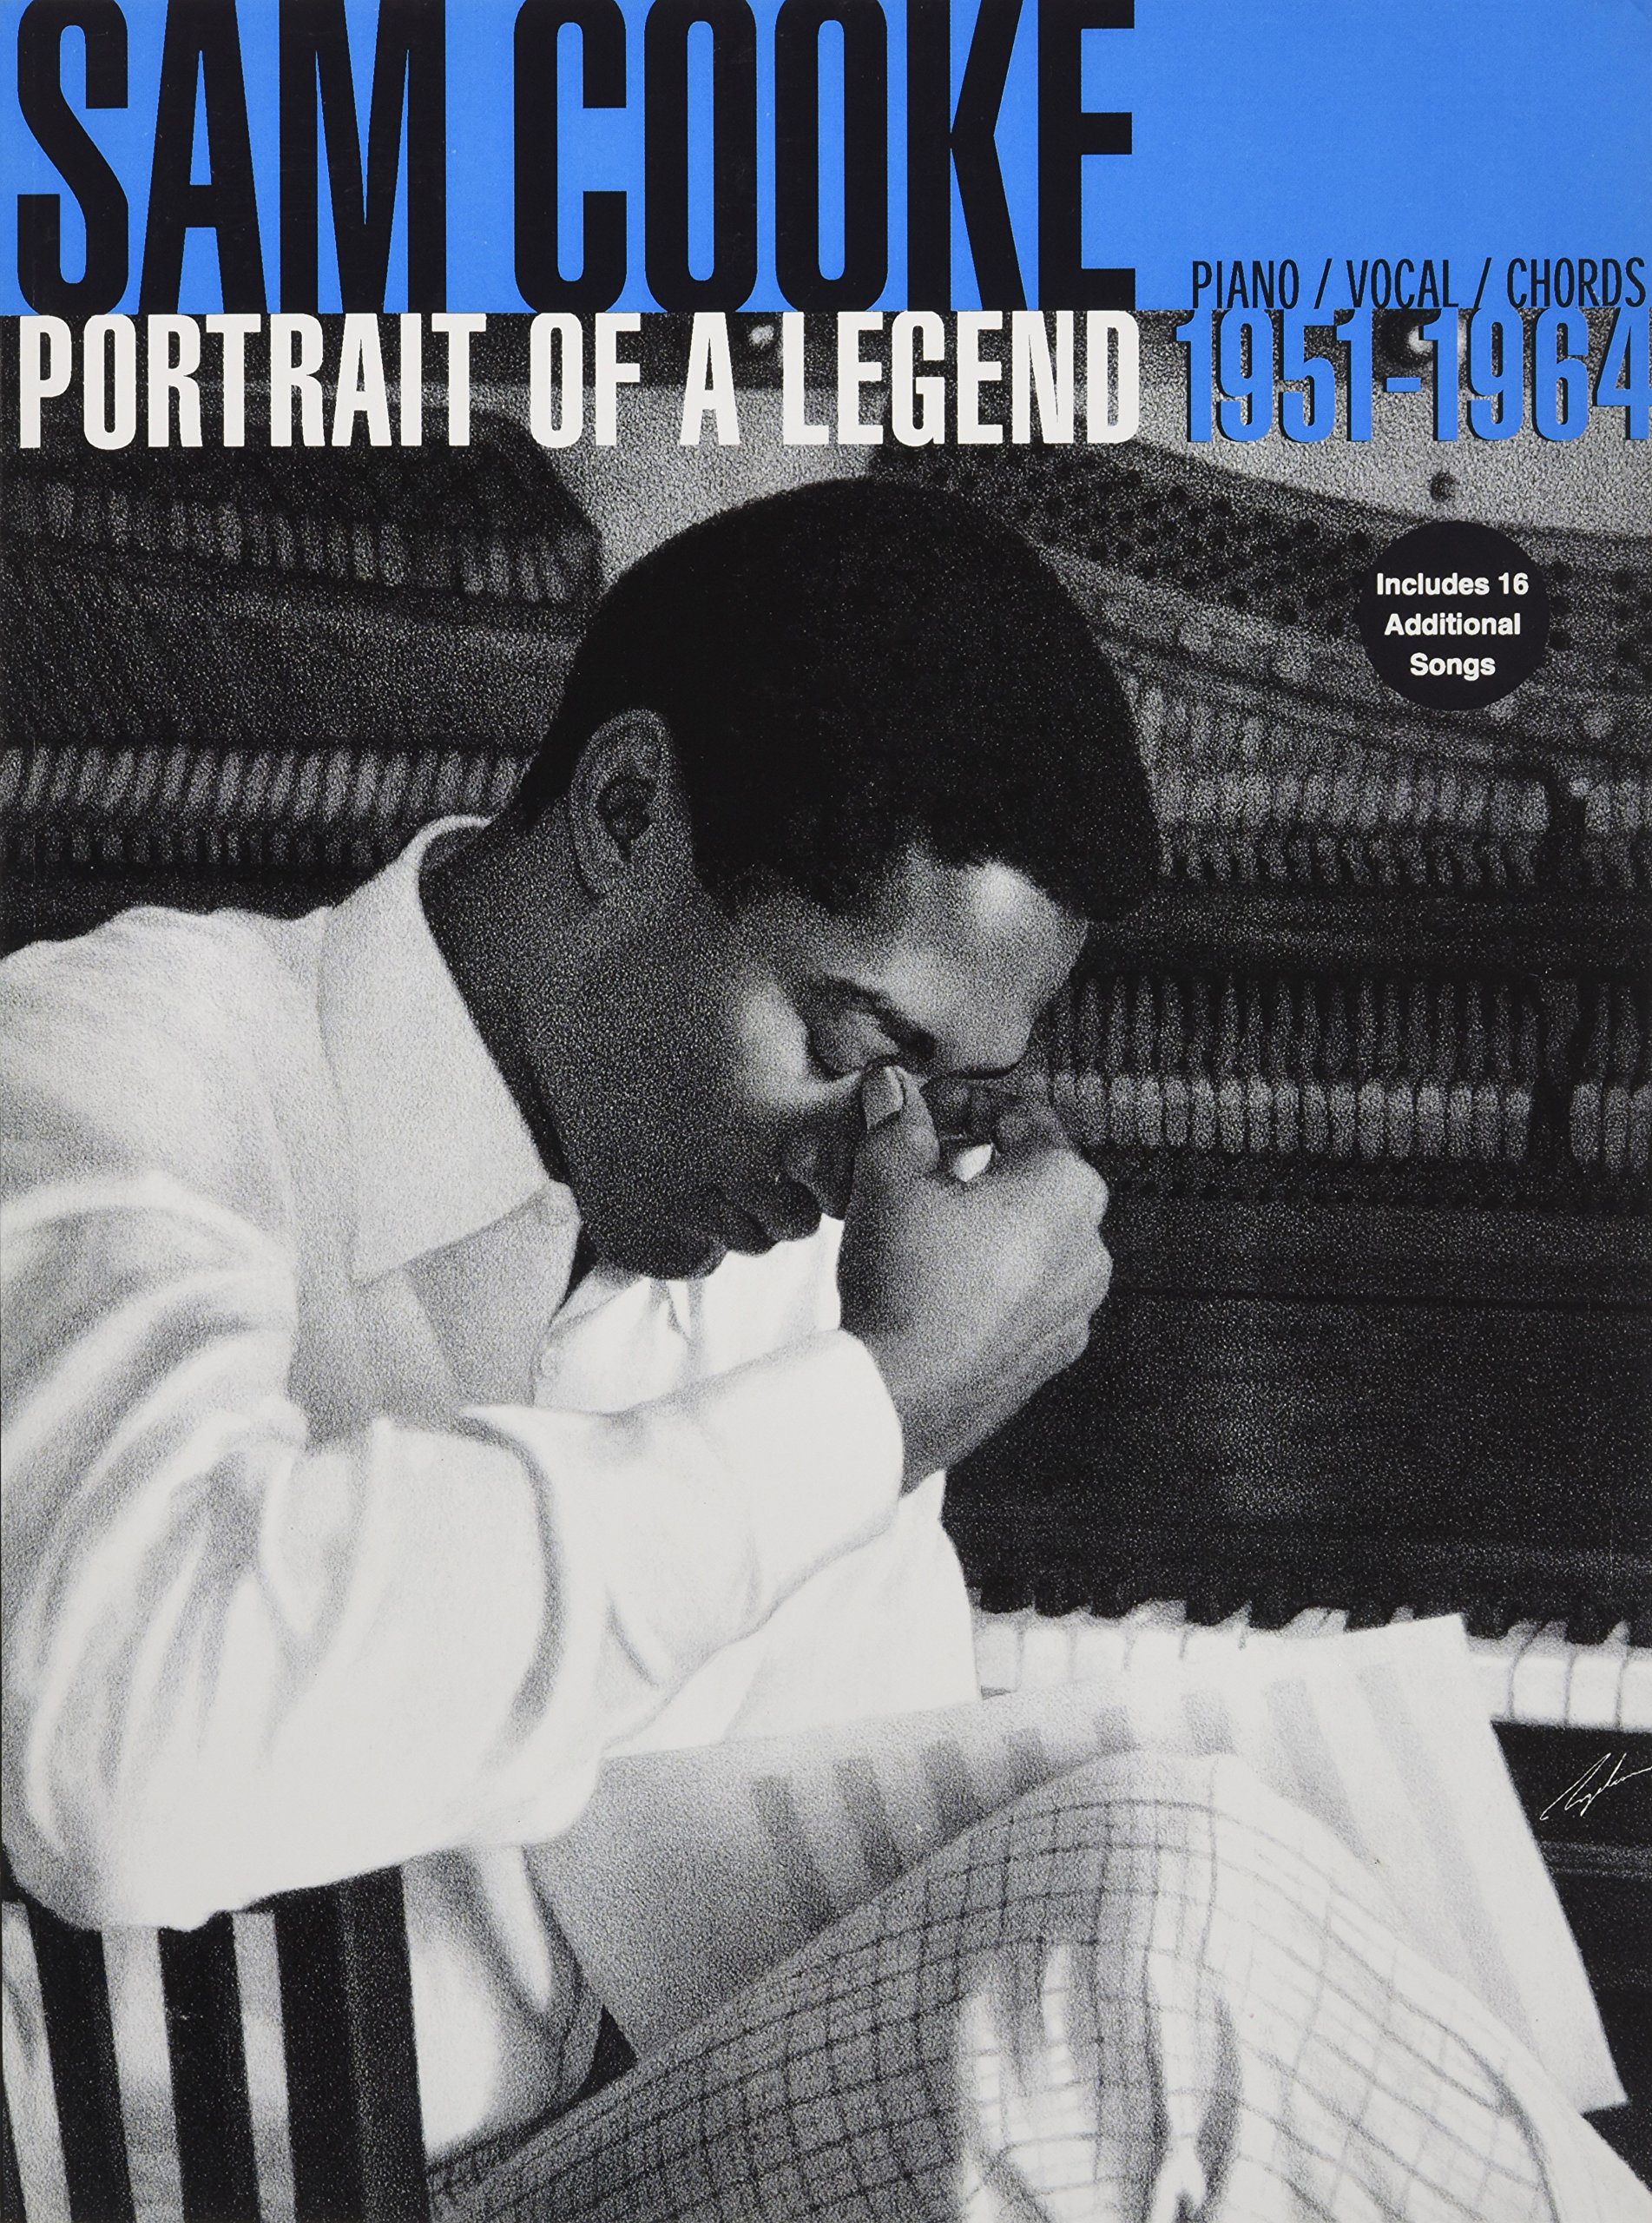 Sam Cooke Portrait Of A Legend 1951 1964 Pianovocalchords Sam